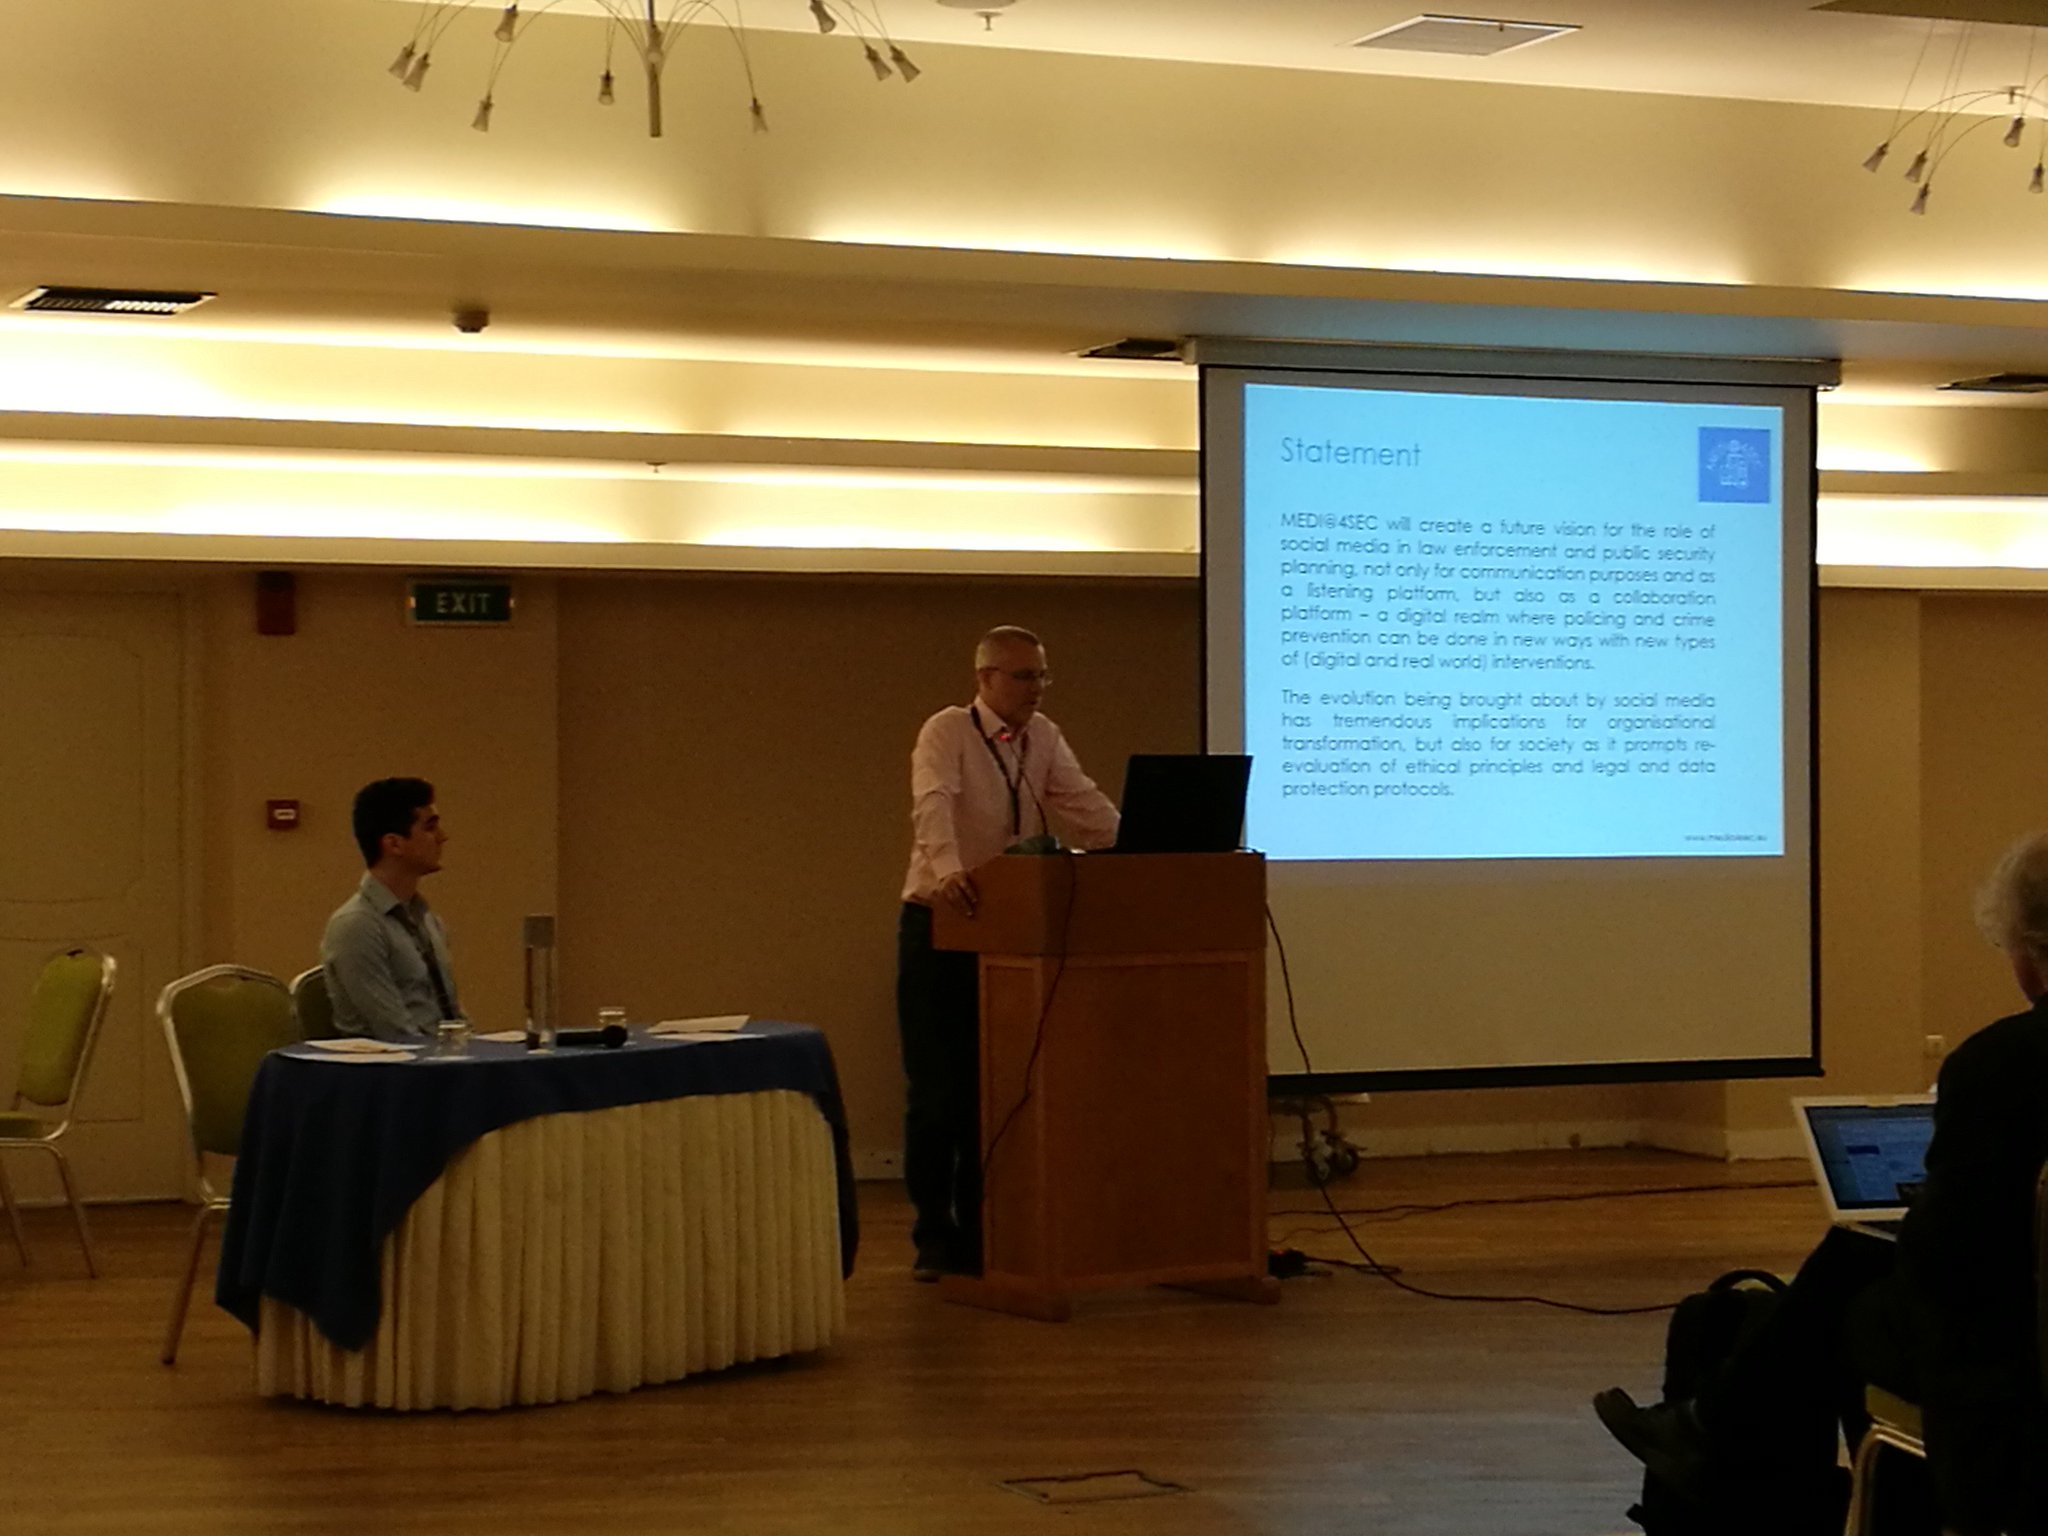 Top story: @EOS_EU: '@EOS_EU at #media4sec 2nd workshop in Athens ' https://t.co/dOLgMWnjJO, see more https://t.co/bH1VXGKsud